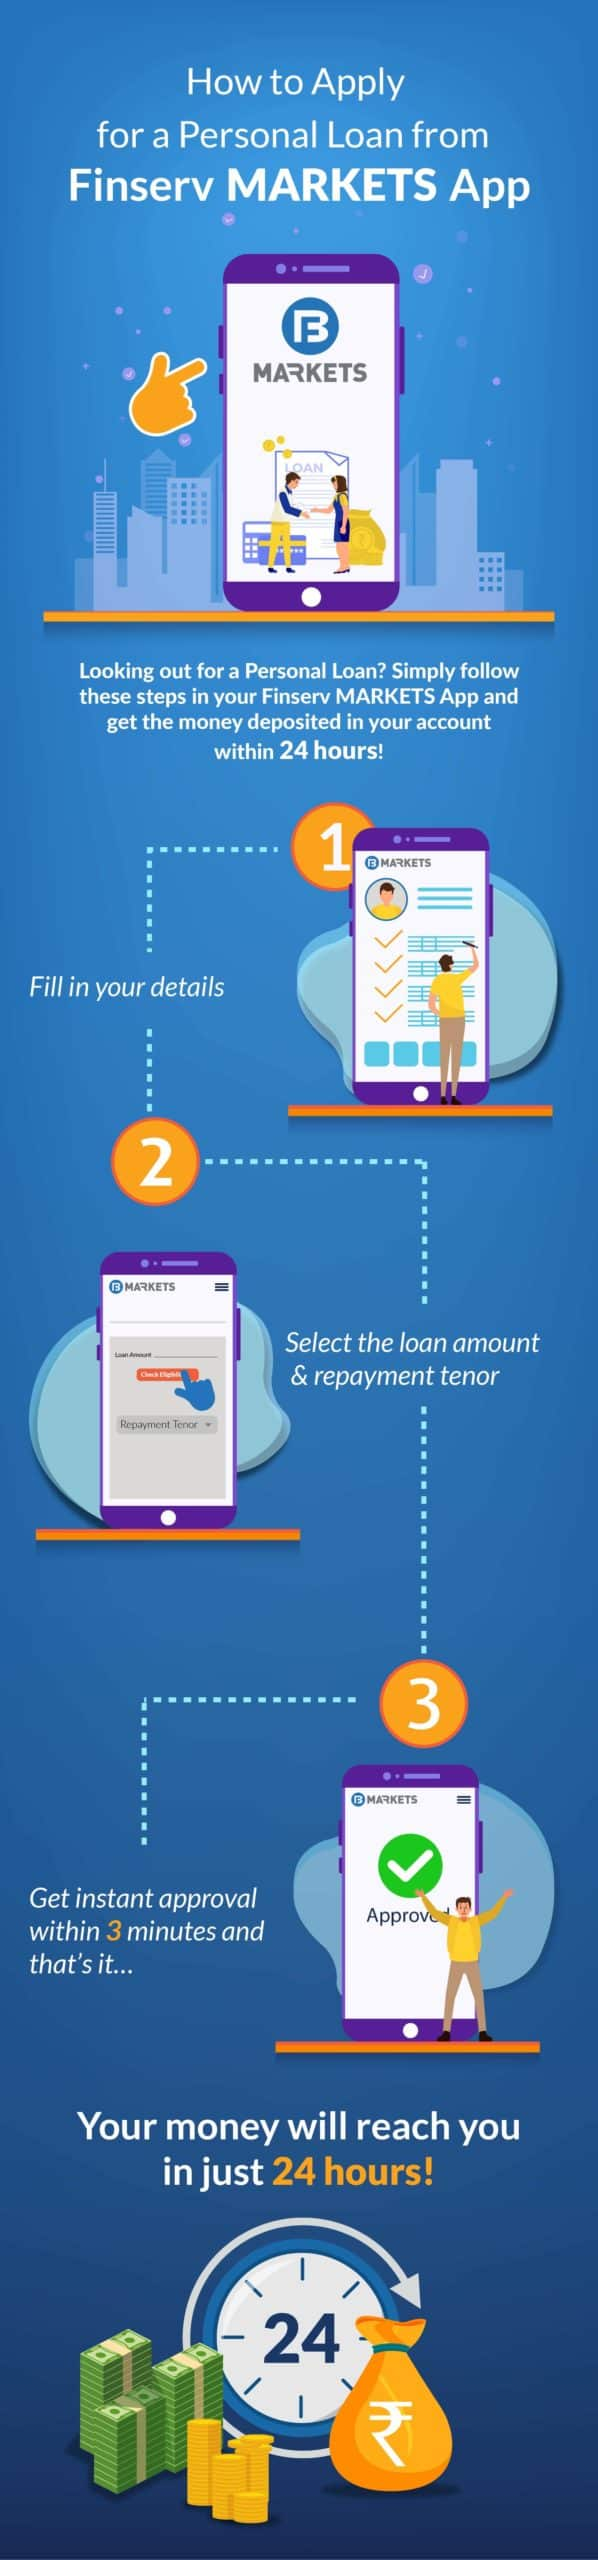 Personal Loan App Infographic